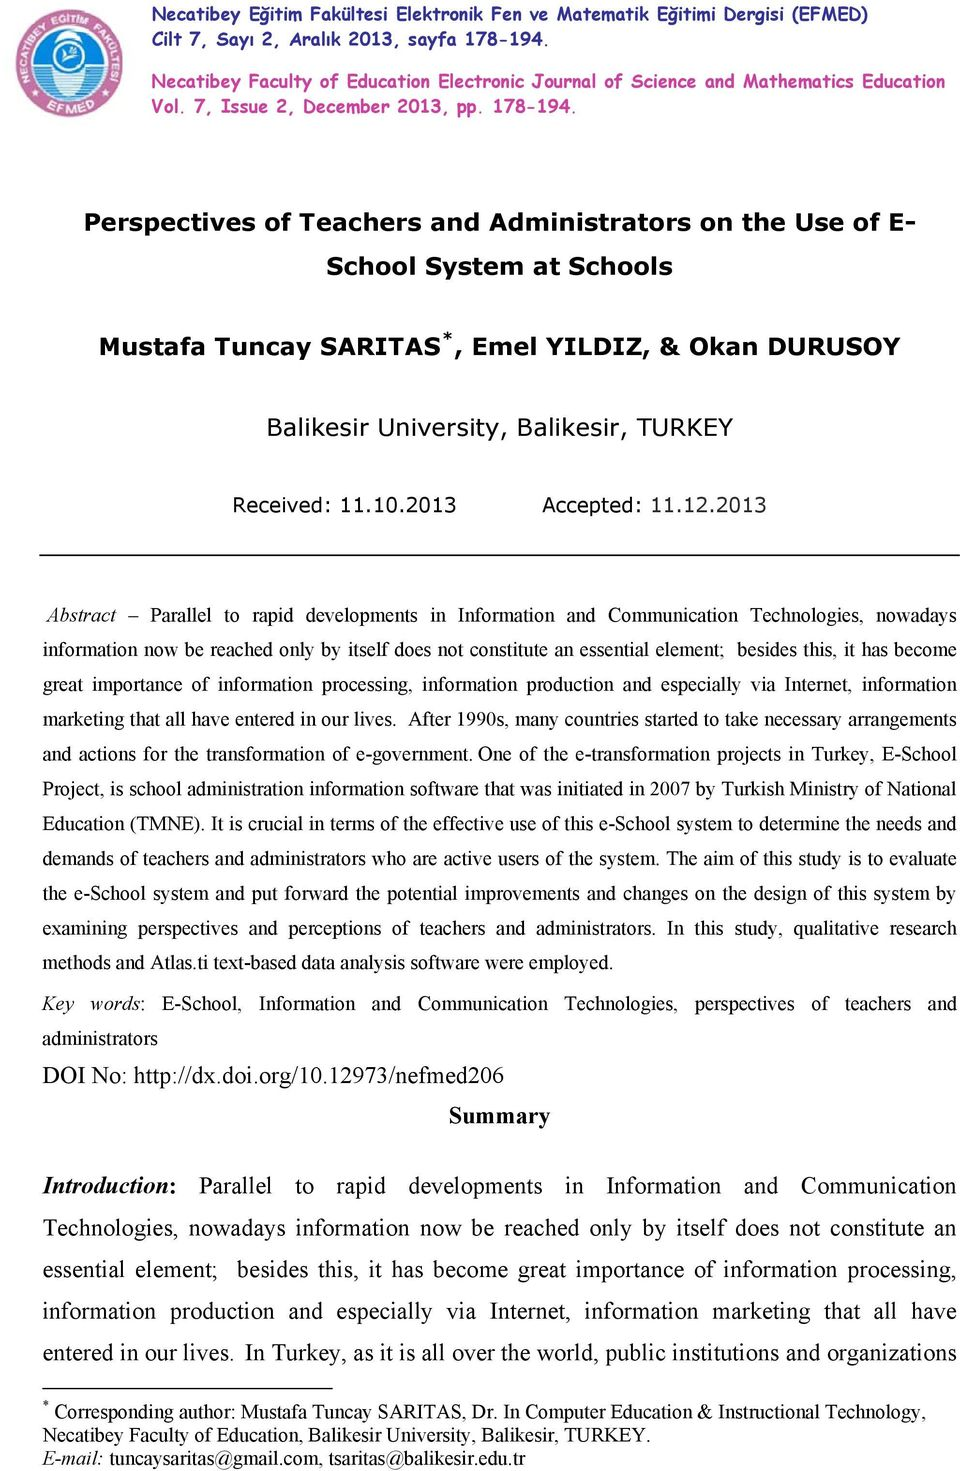 Perspectives of Teachers and Administrators on the Use of E- School System at Schools Mustafa Tuncay SARITAS *, Emel YILDIZ, & Okan DURUSOY Balikesir University, Balikesir, TURKEY Received: 11.10.